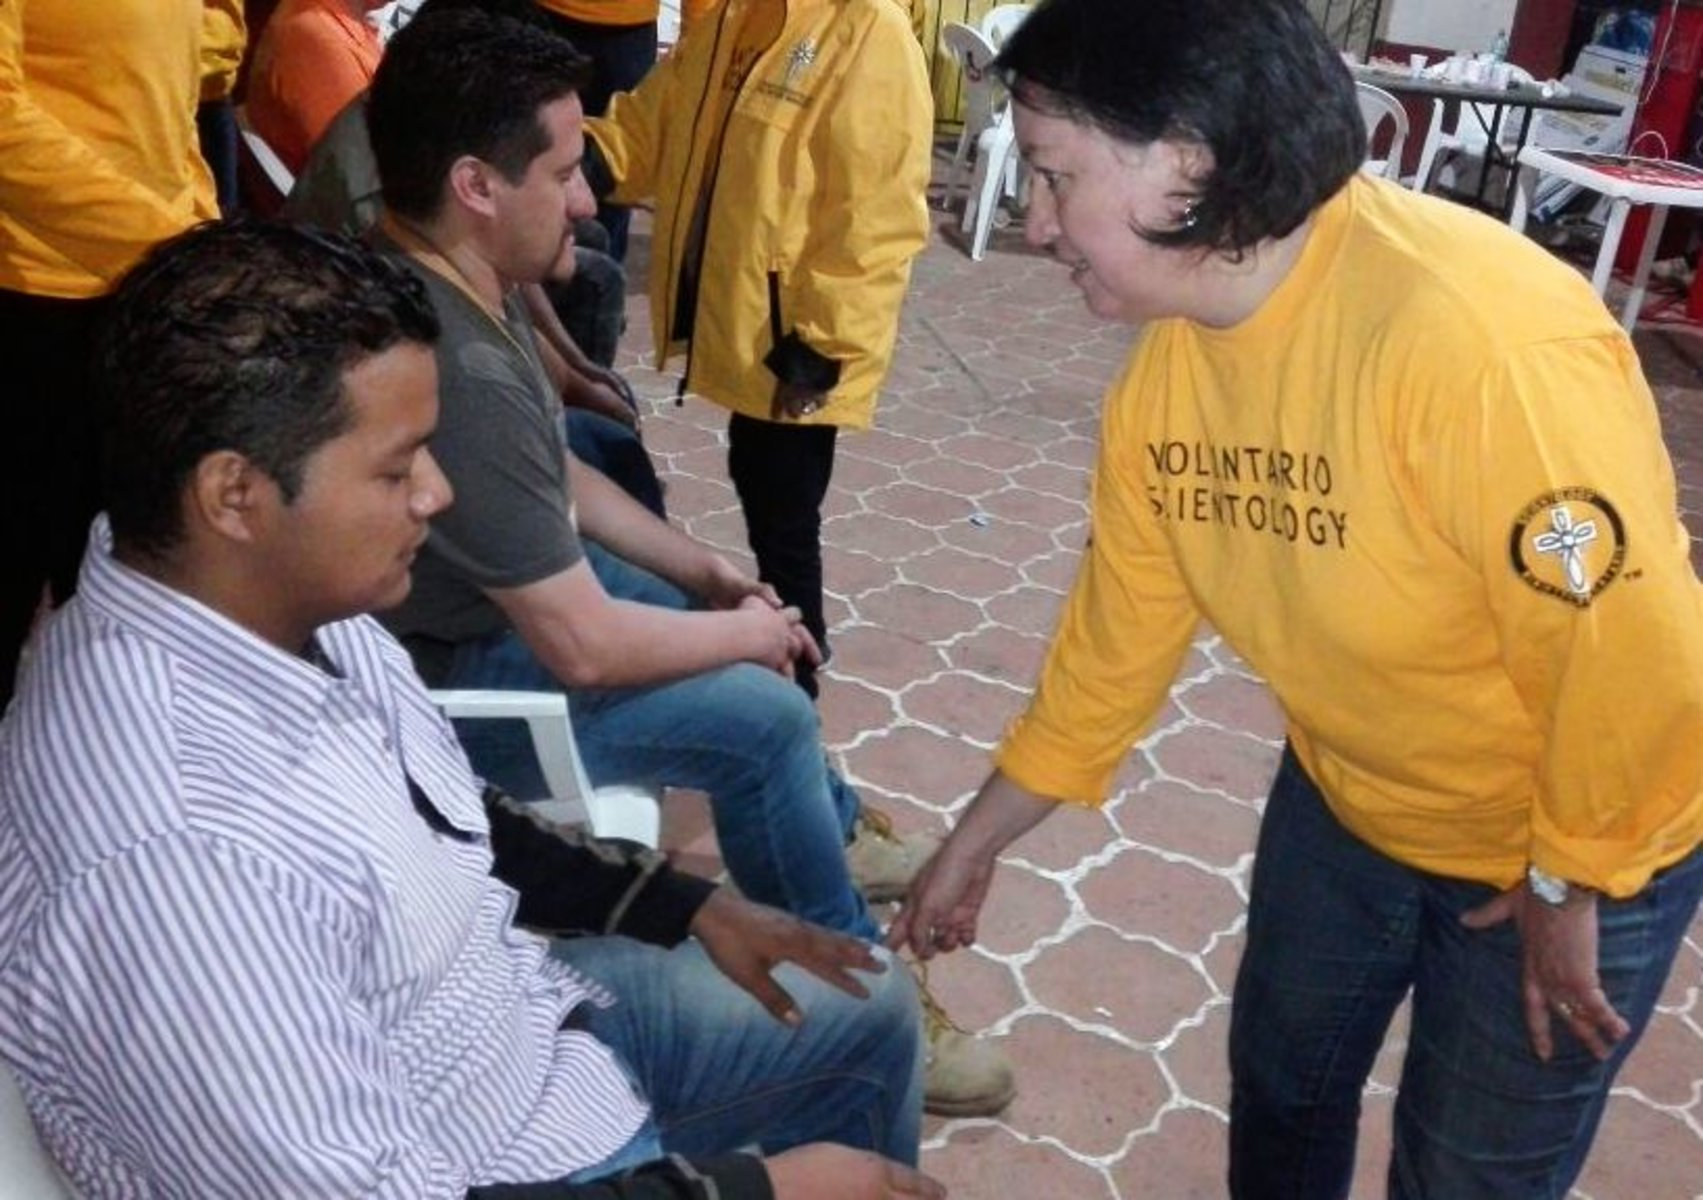 A Volunteer Minister provides relief using a Scientology assist to reduce pain, stress and trauma